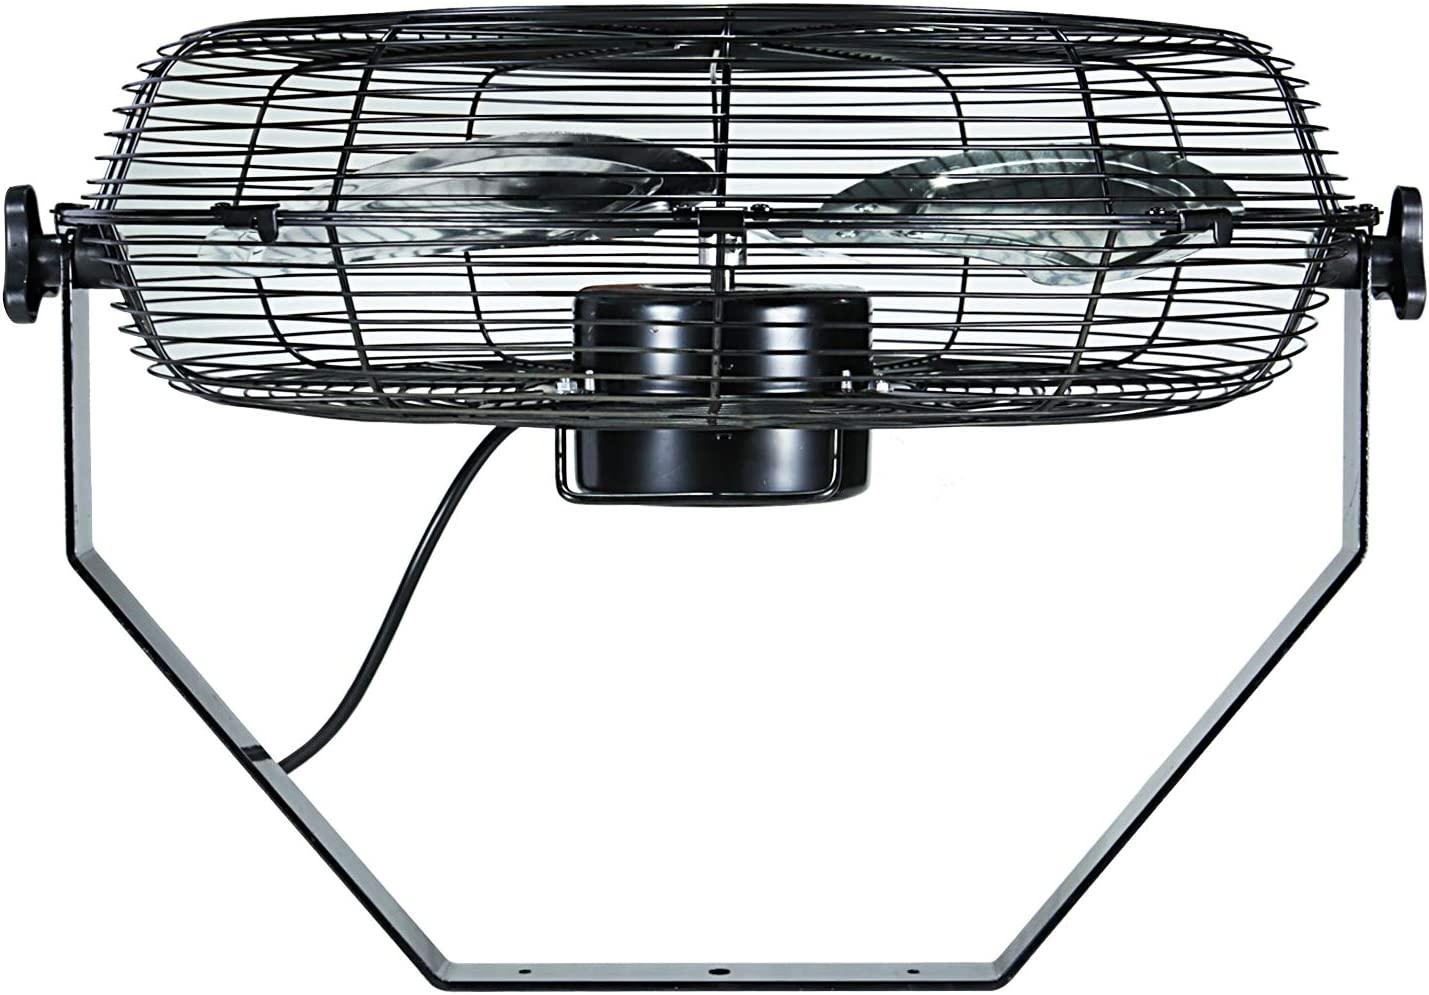 Residential and Shop Use-ETL Safety Listed Black Wall-Mount Fan Commercial Simple Deluxe 20 Inch High Velocity 3 Speed for Industrial